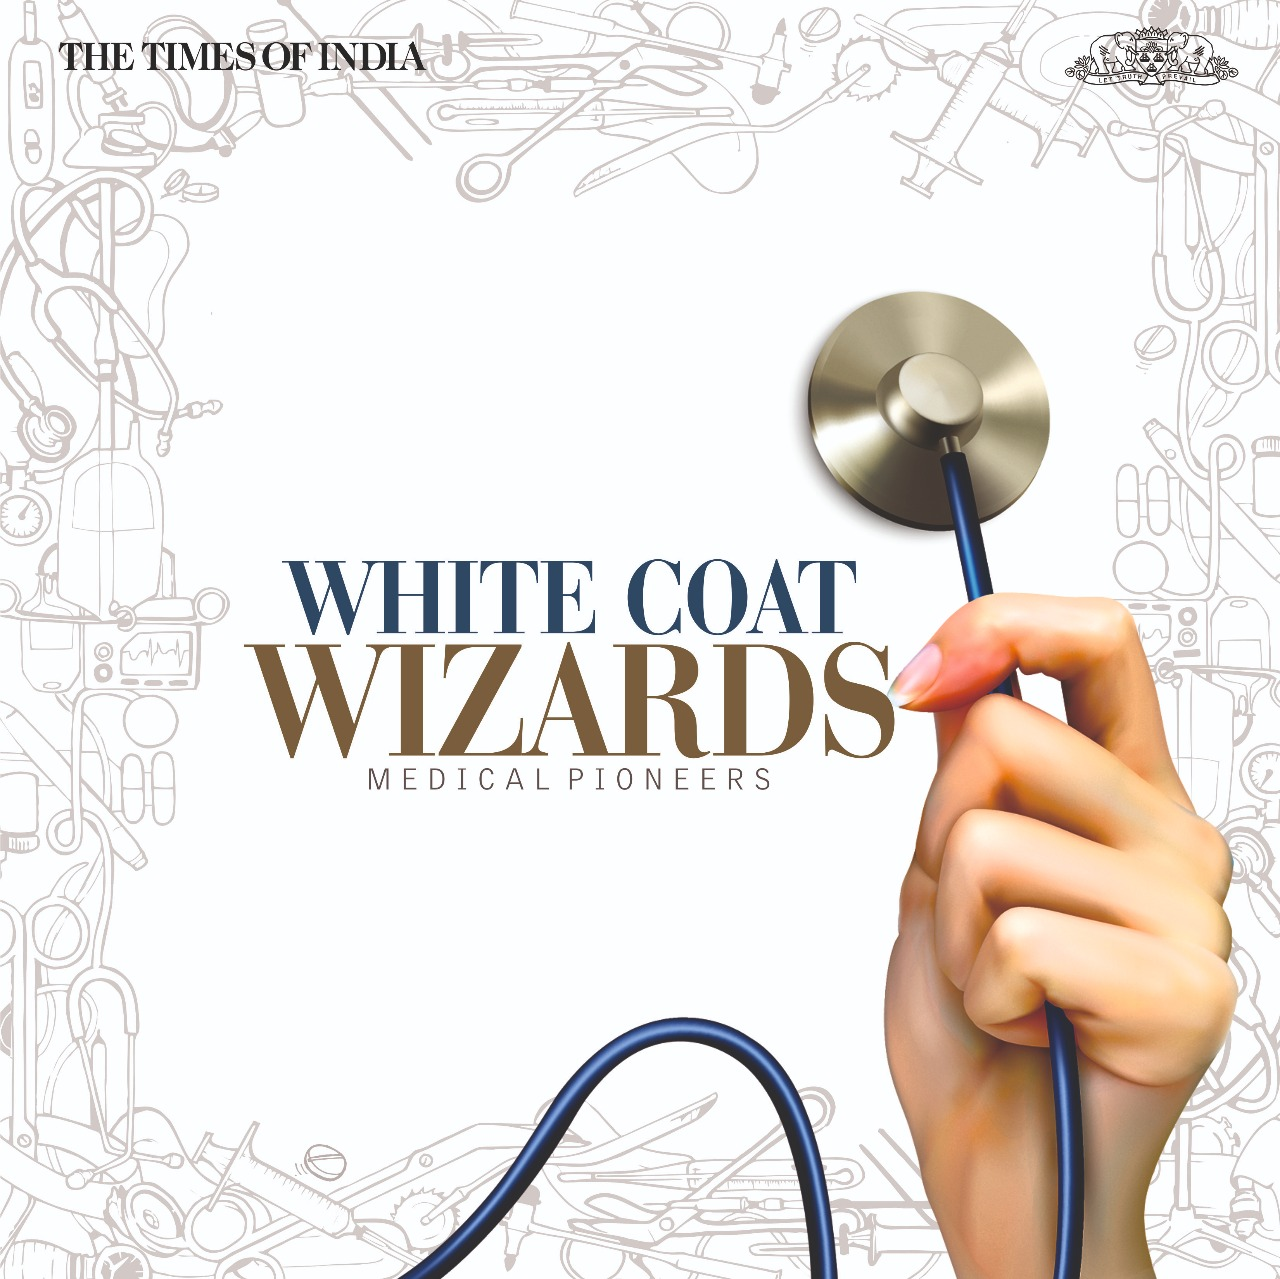 Coffee Table Book White Coat Wizards By The Times Of India